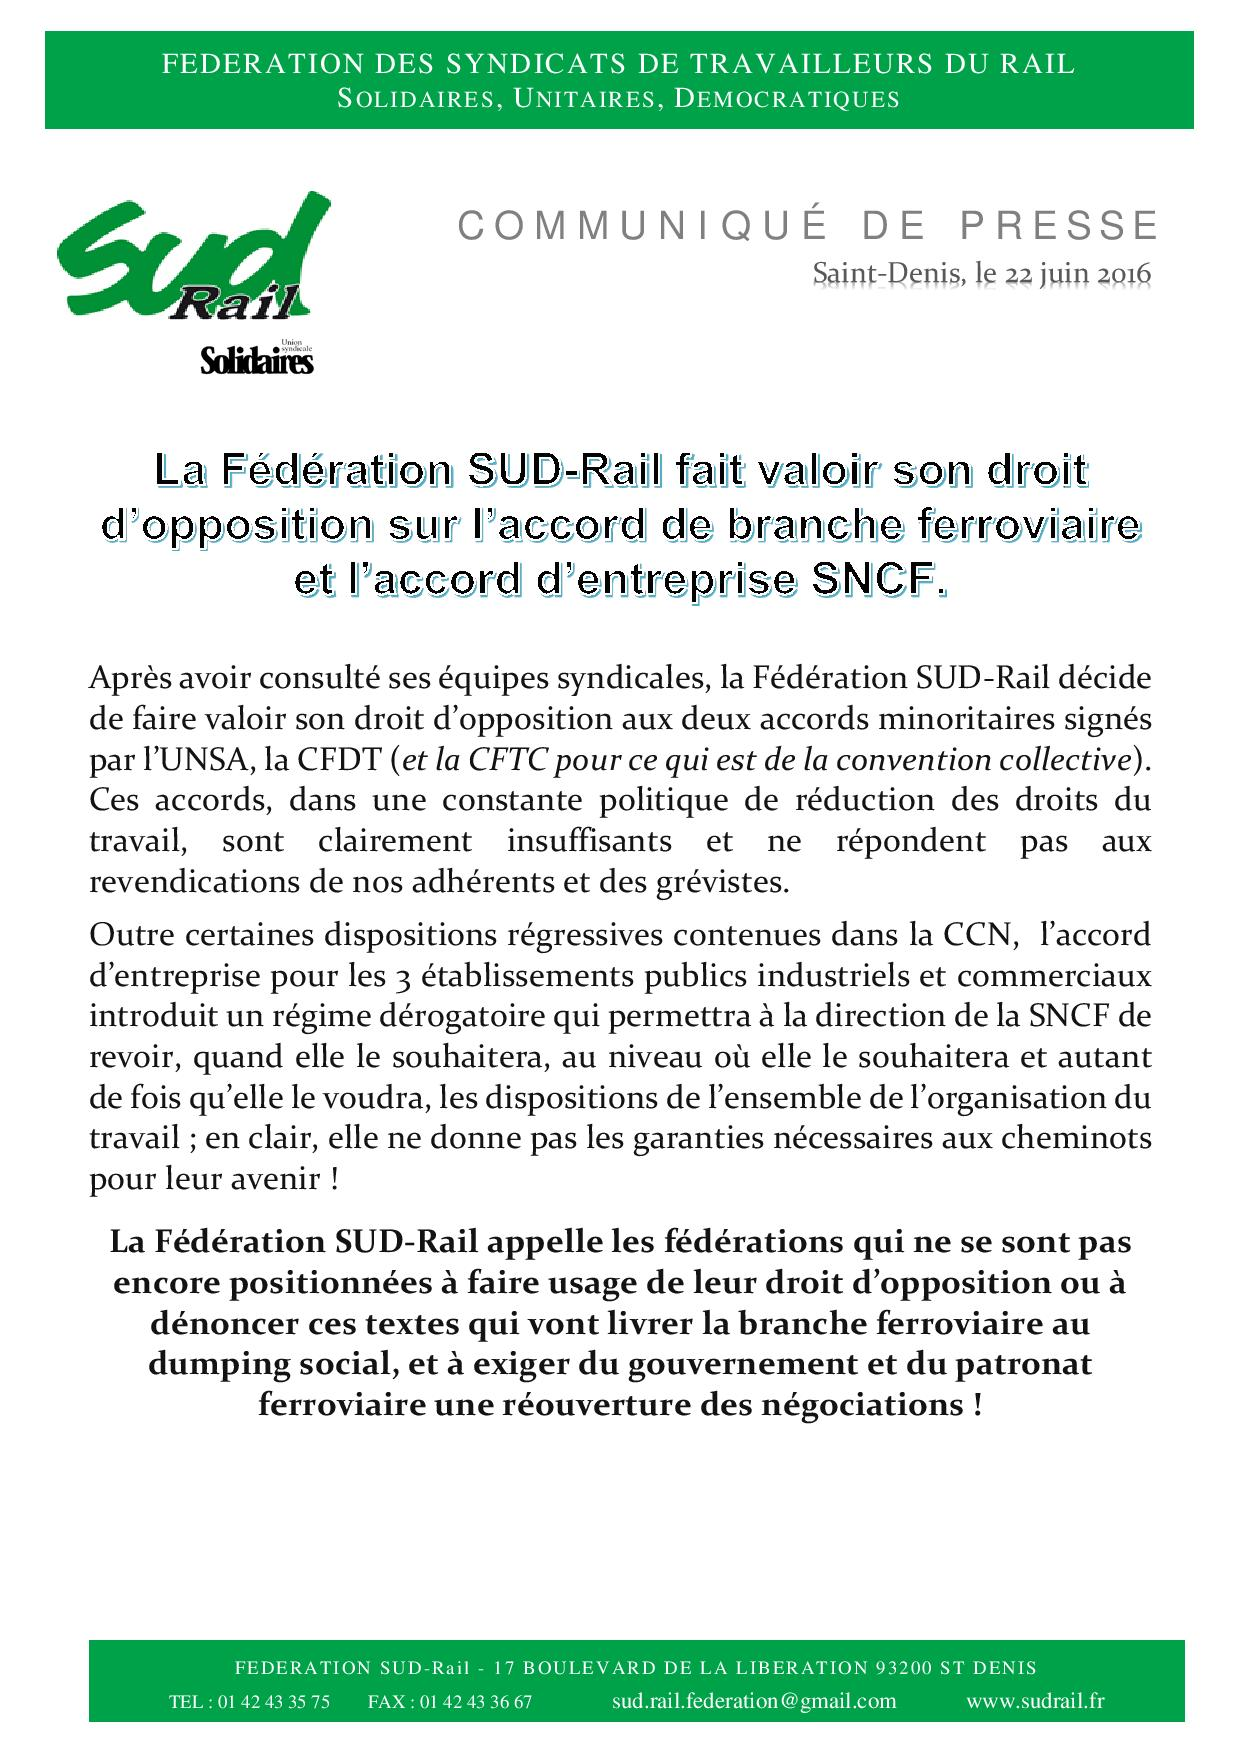 droit.opposition.22.06.2016-page-001